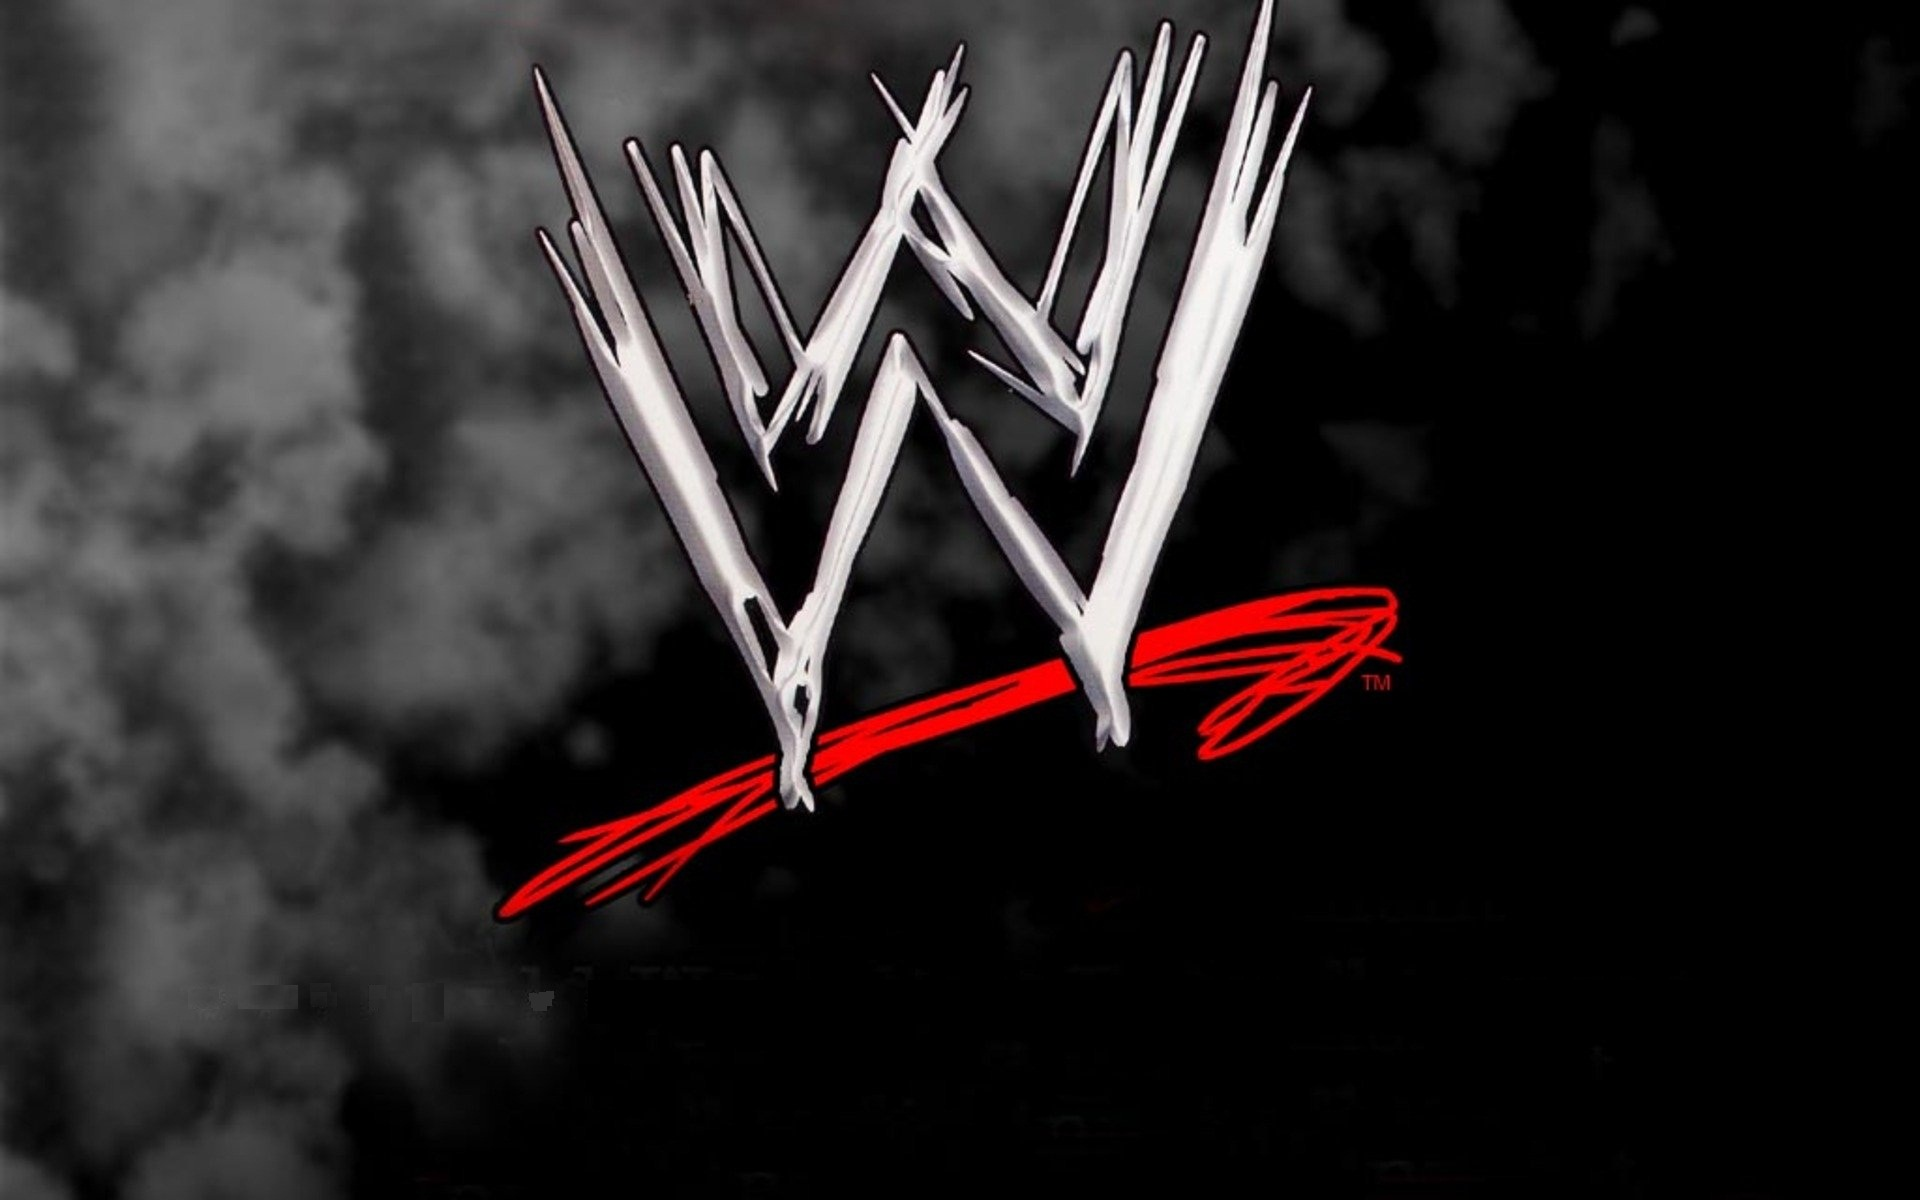 Football Hd Wallpapers For Laptop Wwe Wallpapers